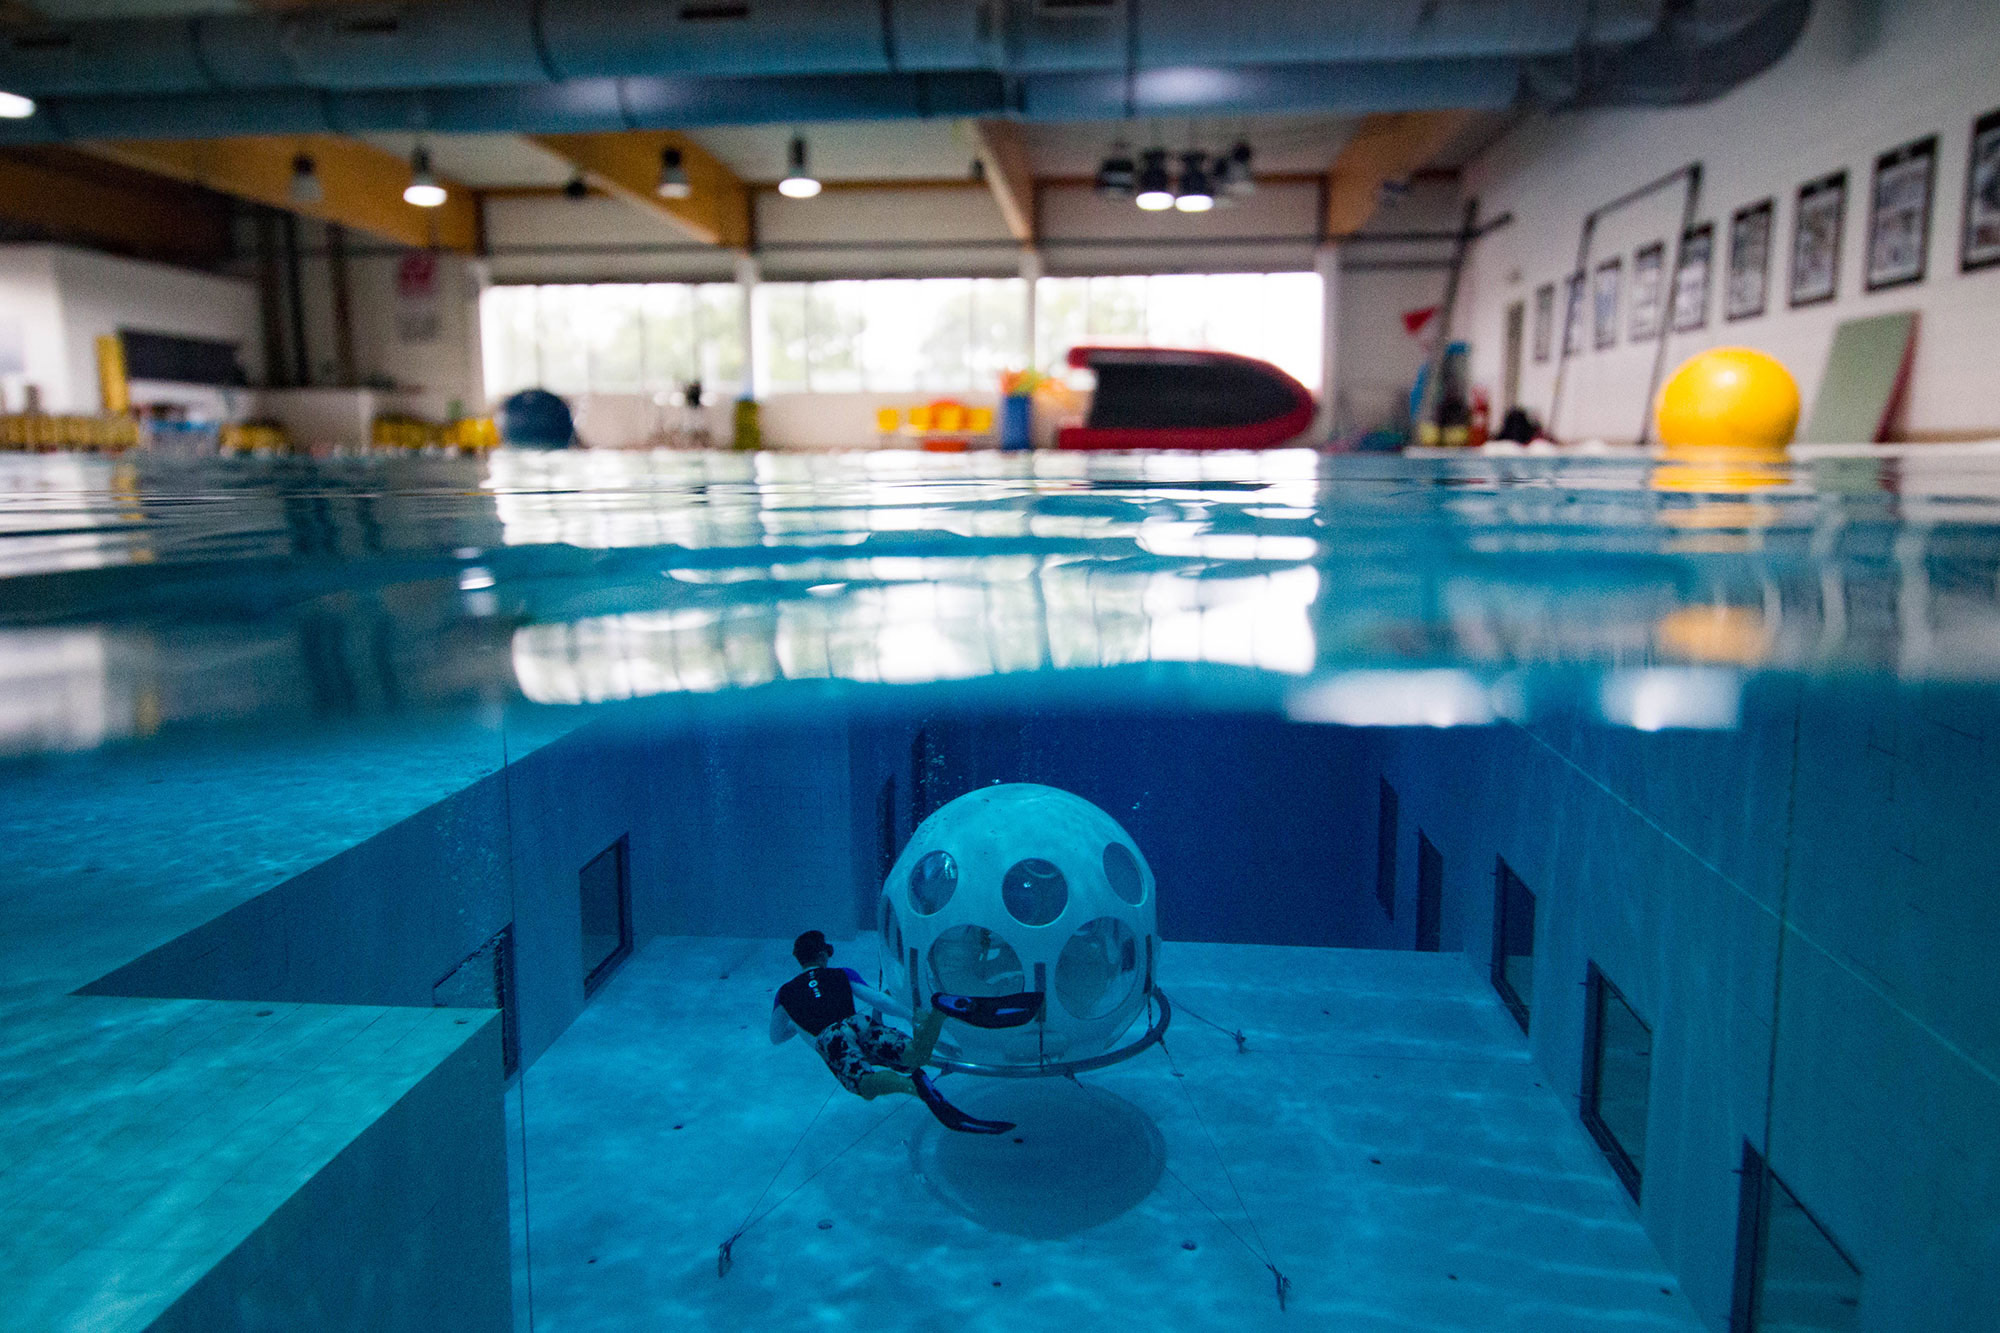 Free Diving The Nemo In Belgium, Learning To Scuba Dive